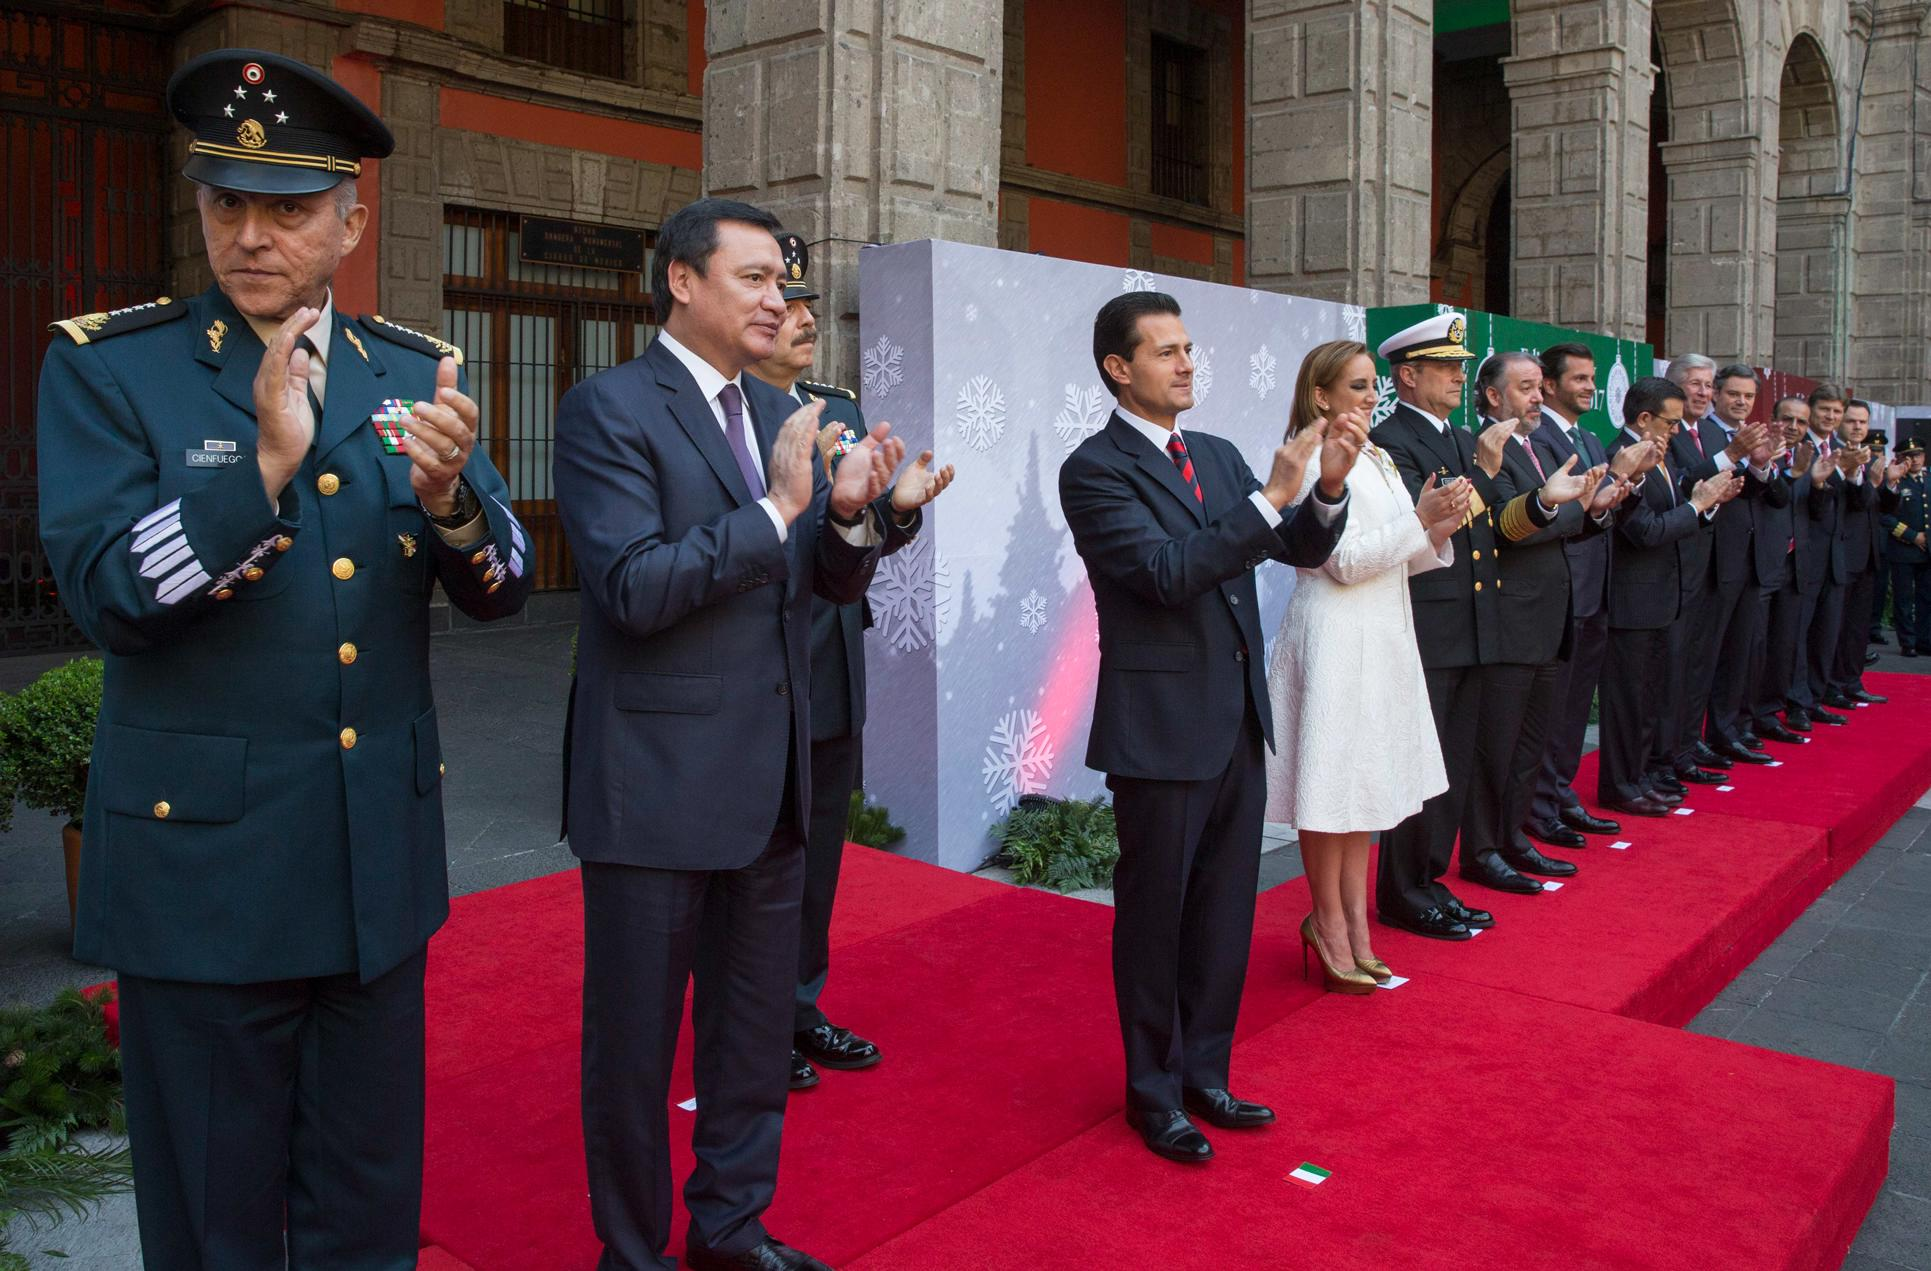 """He expressed his confidence that in 2017,  """"Mexico will do very well, and that it will be  great year for Mexico in which we will cope with specific challenges""""."""